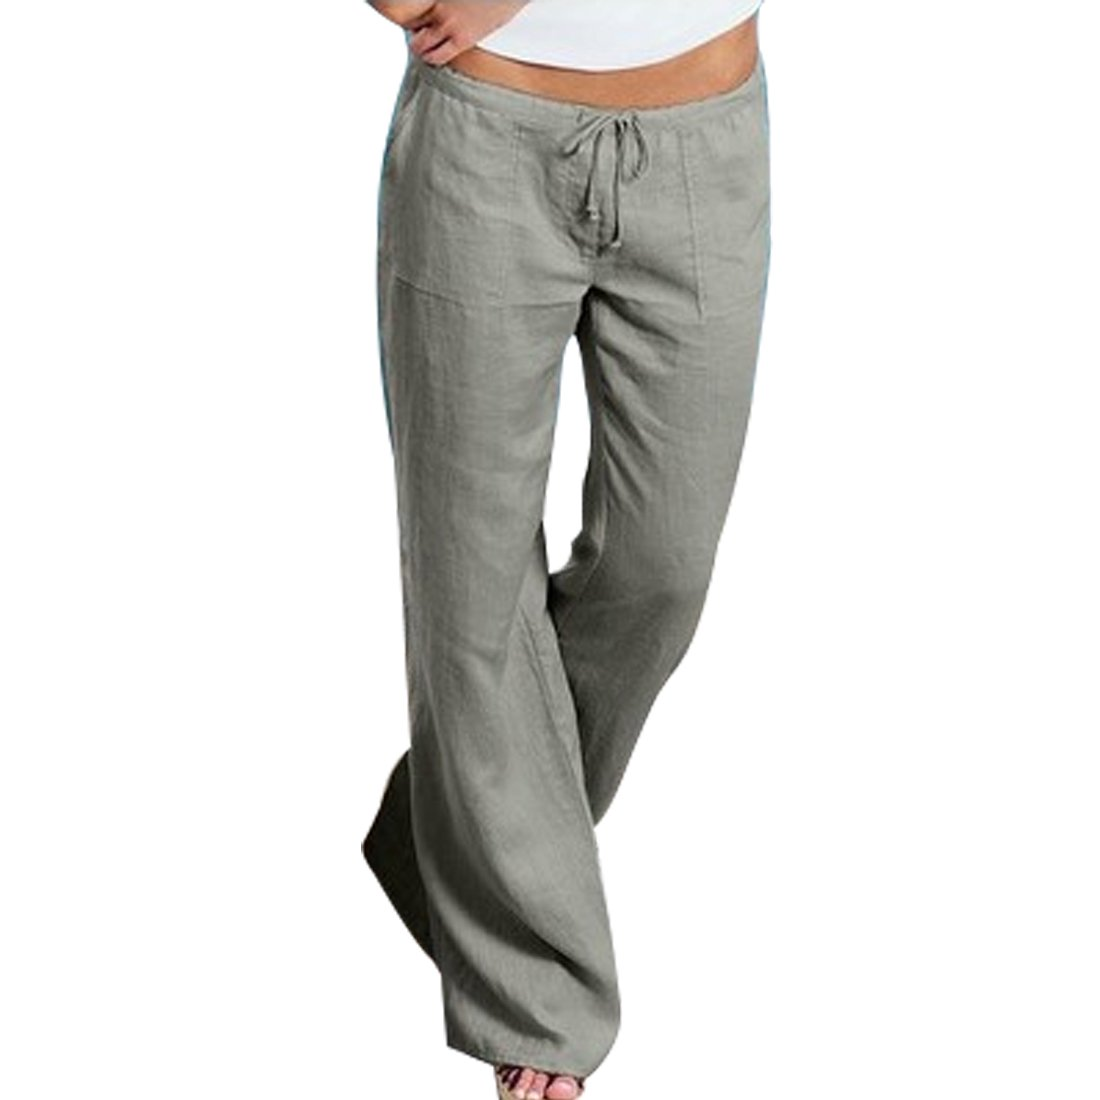 Huicai Women Flared Trousers Comfortable Linen Pants High Waist Casual Pants Huicai Co. Ltd